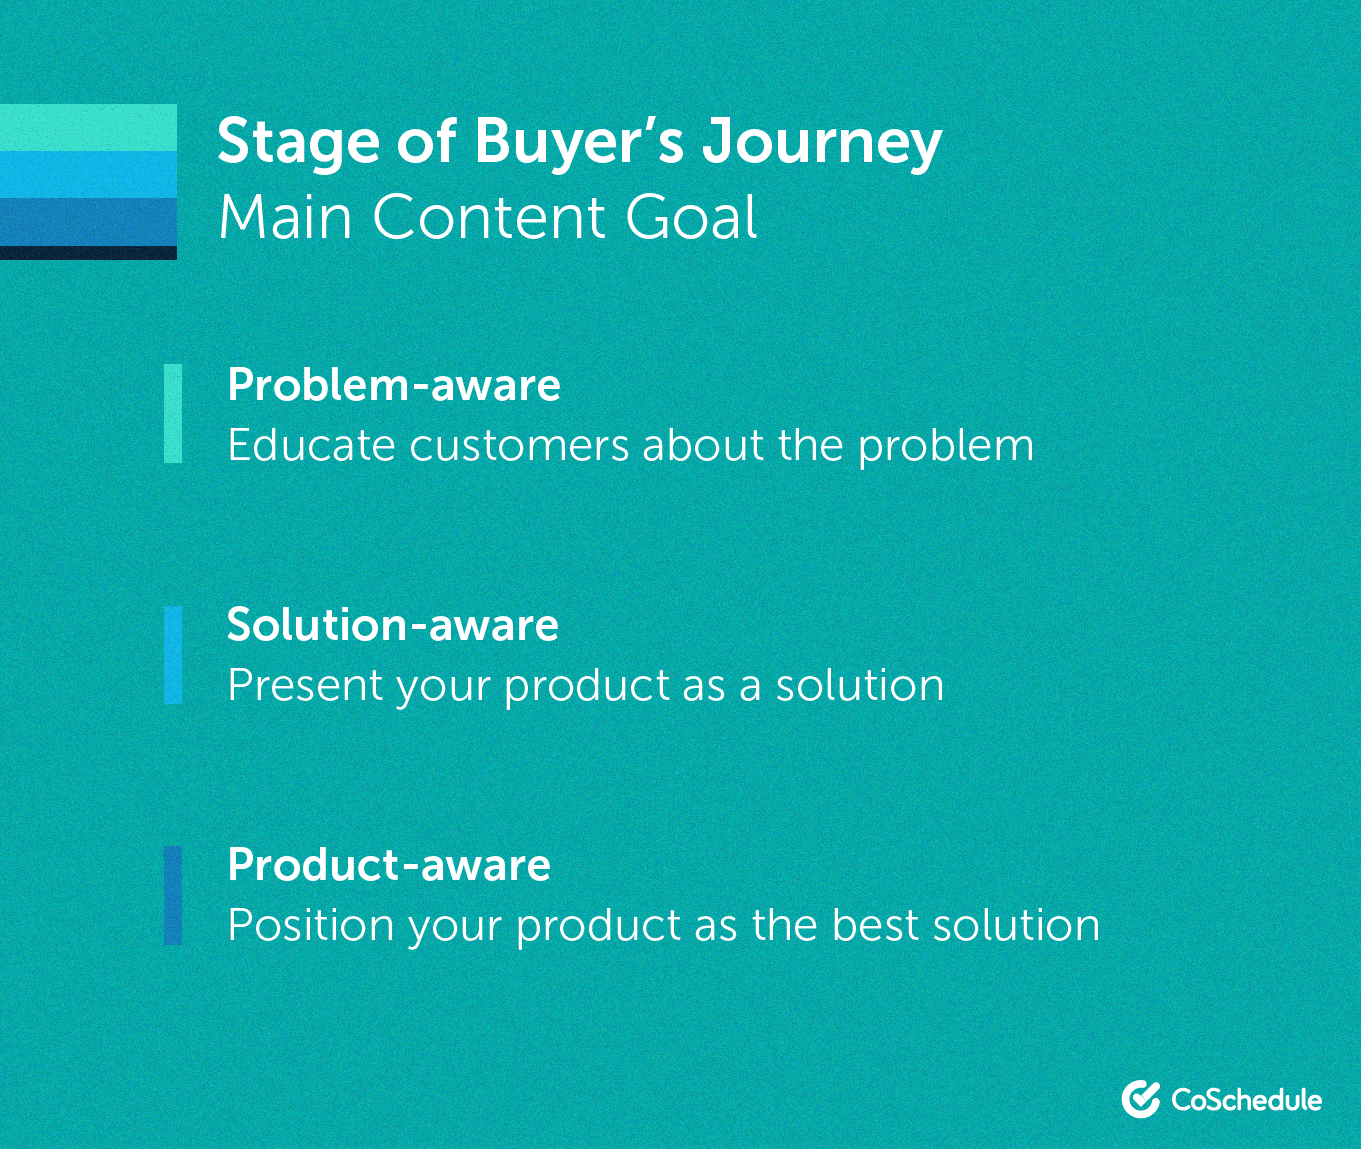 Stages of the buyer journey through the marketing funnel